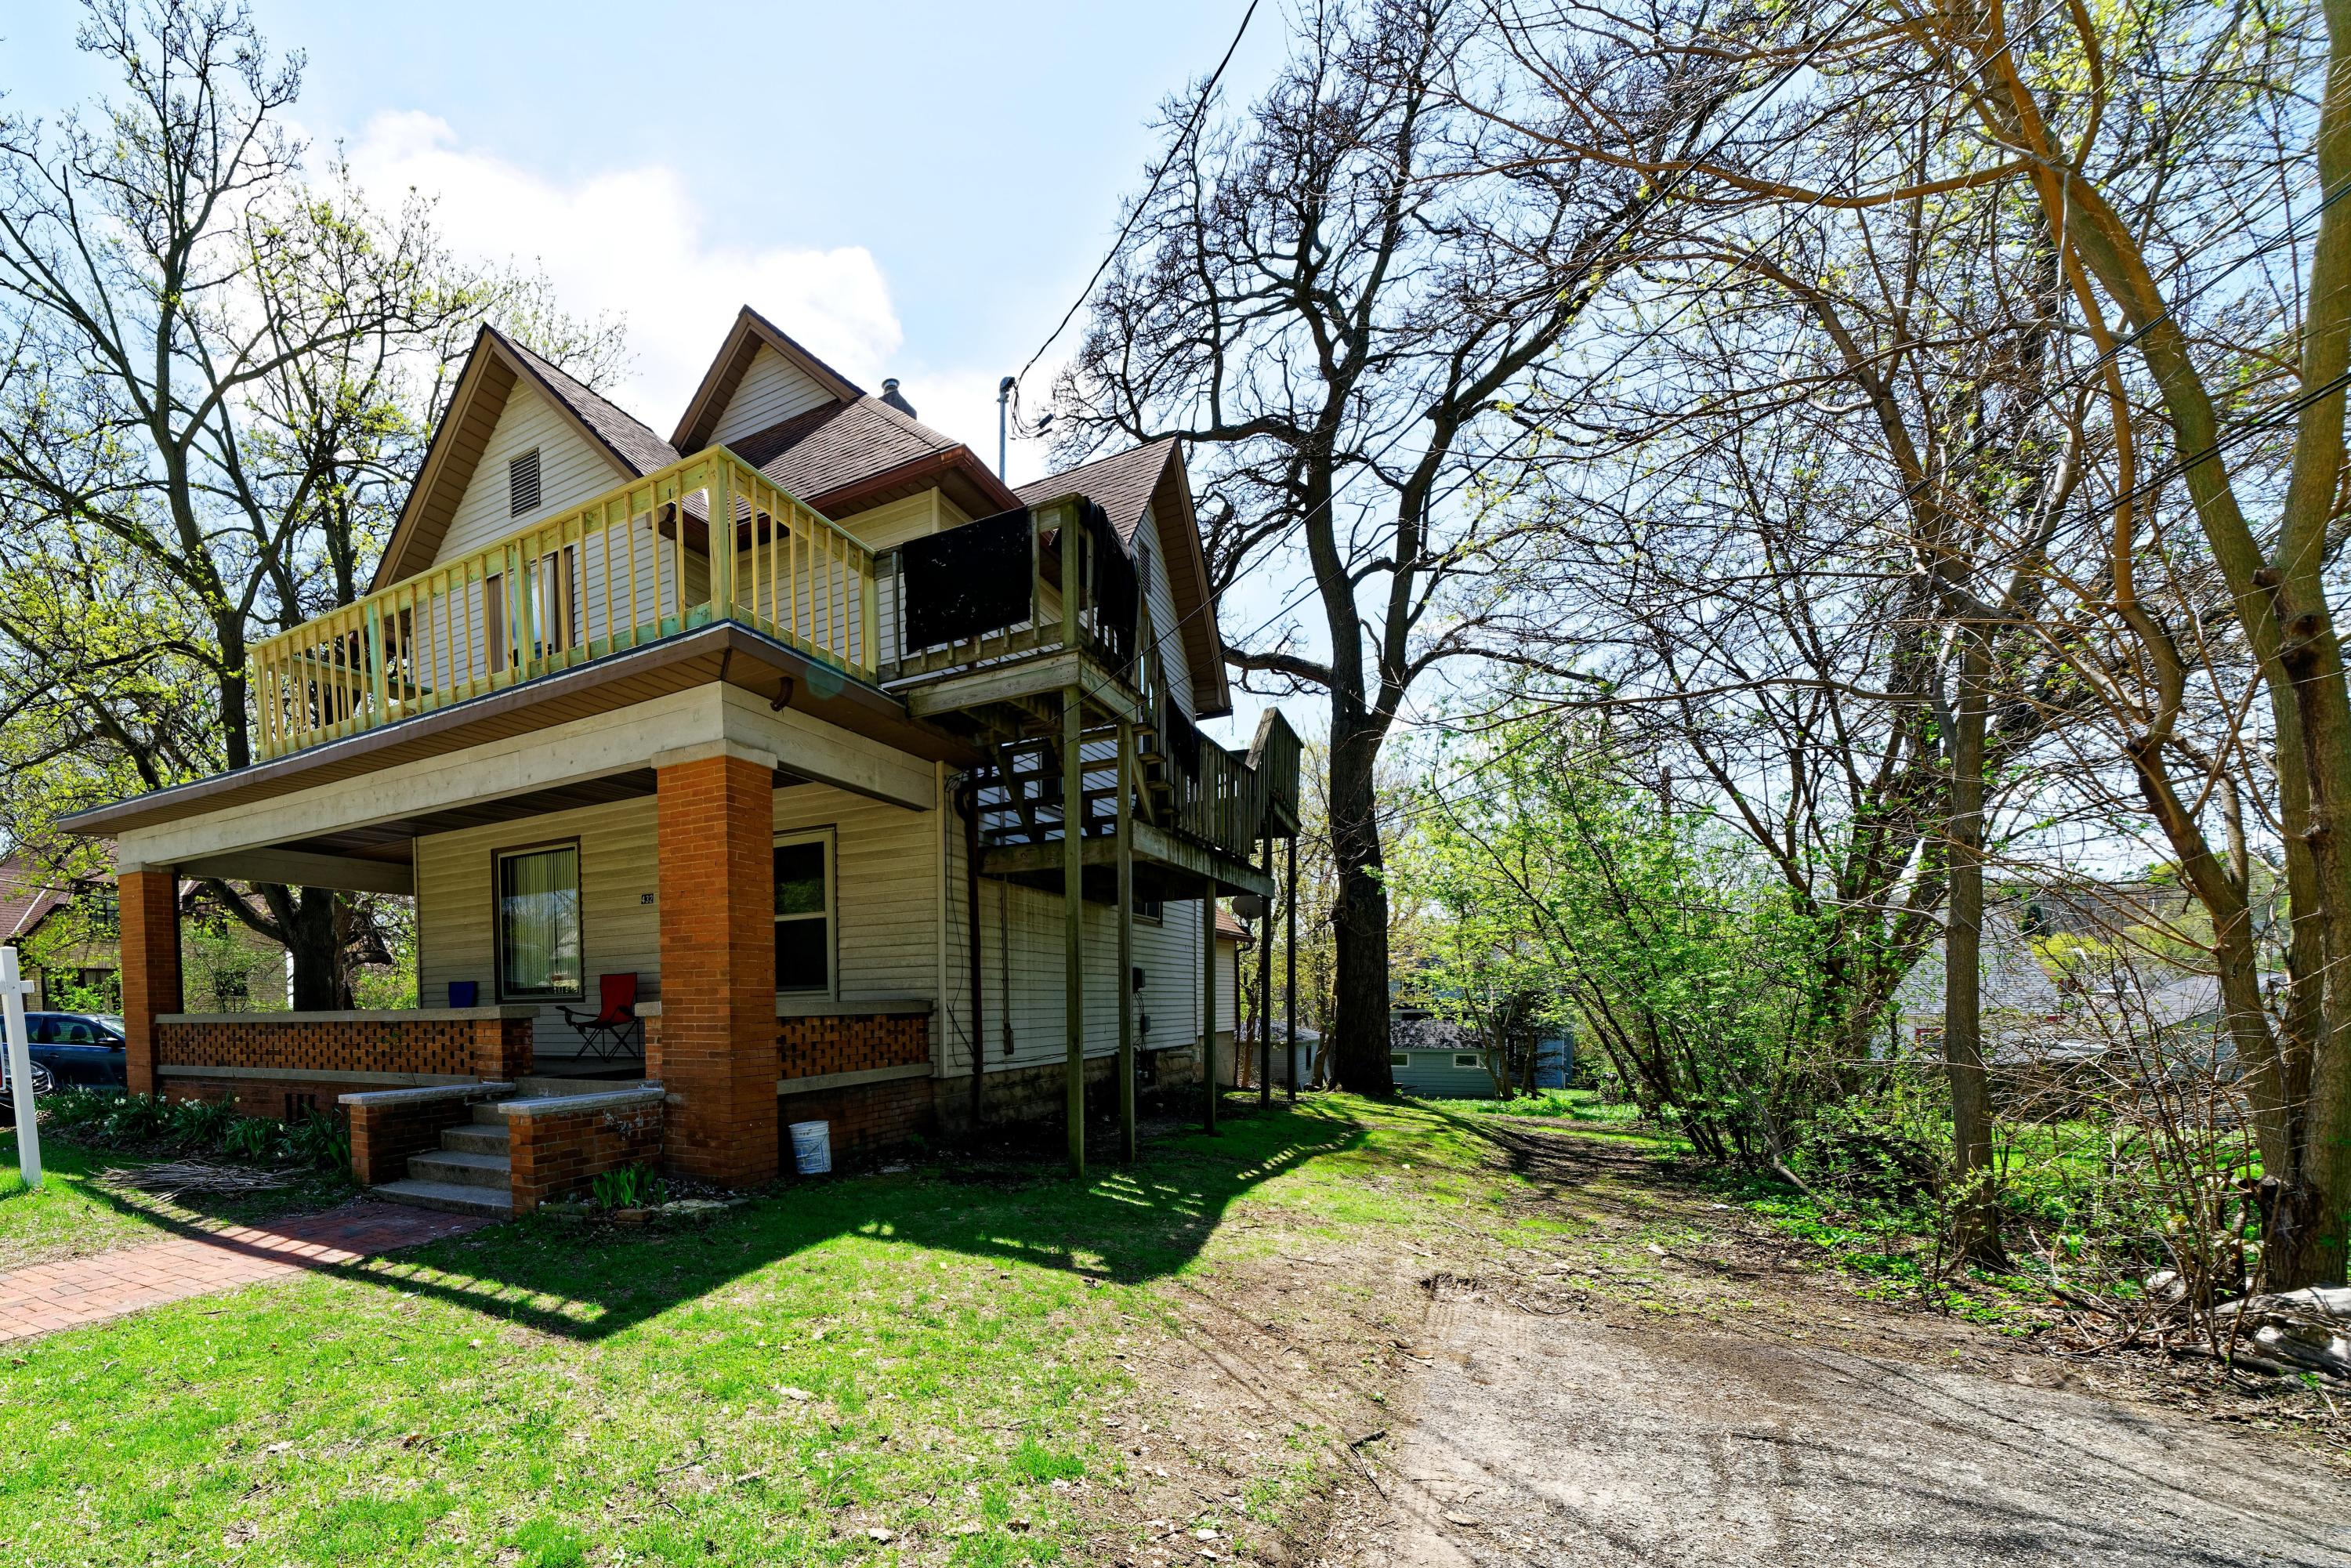 432 Barstow St NW, Waukesha, Wisconsin 53188, ,Multi-Family Investment,For Sale,Barstow St NW,1638827